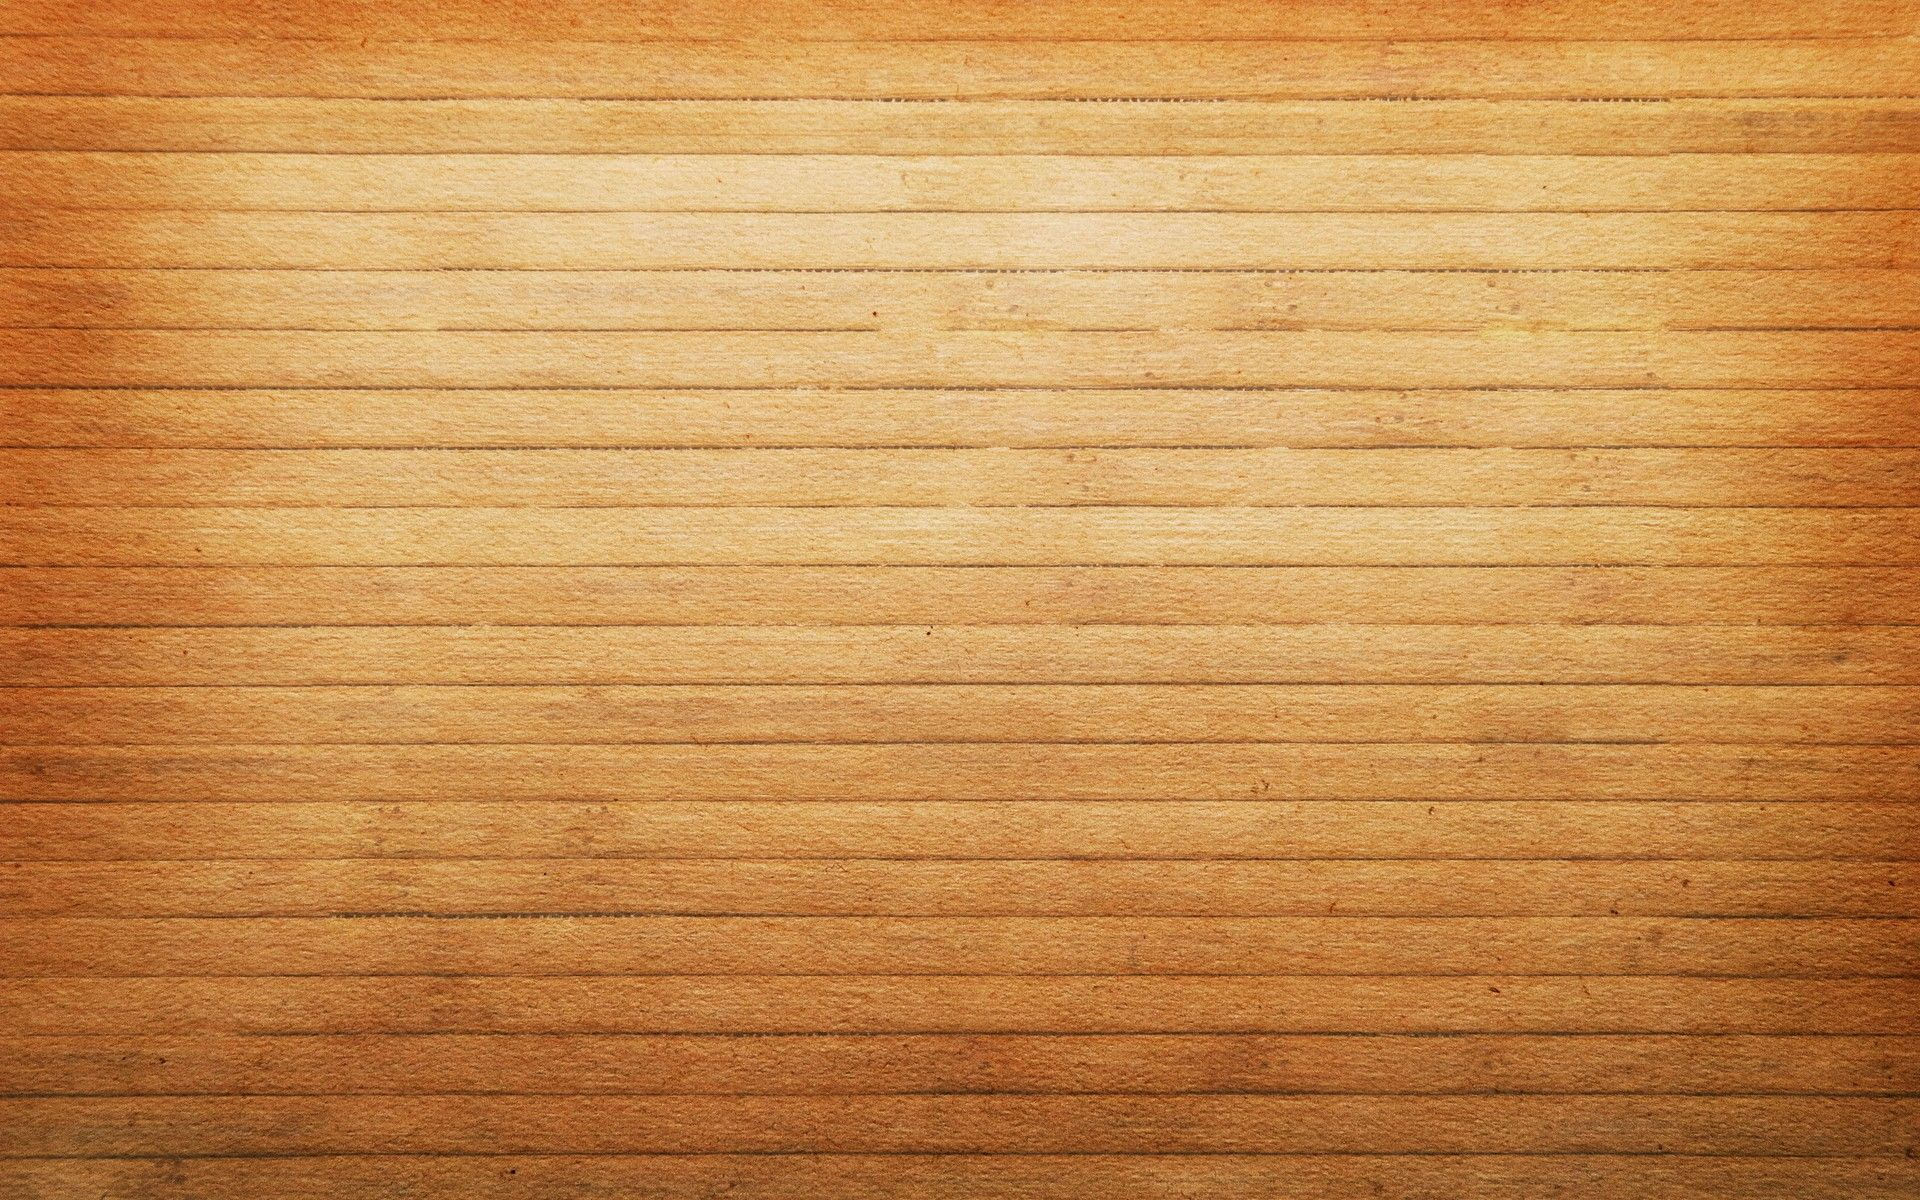 Wood Wall Paper wood textures wallpaper hd - http://imashon/w/wood-textures